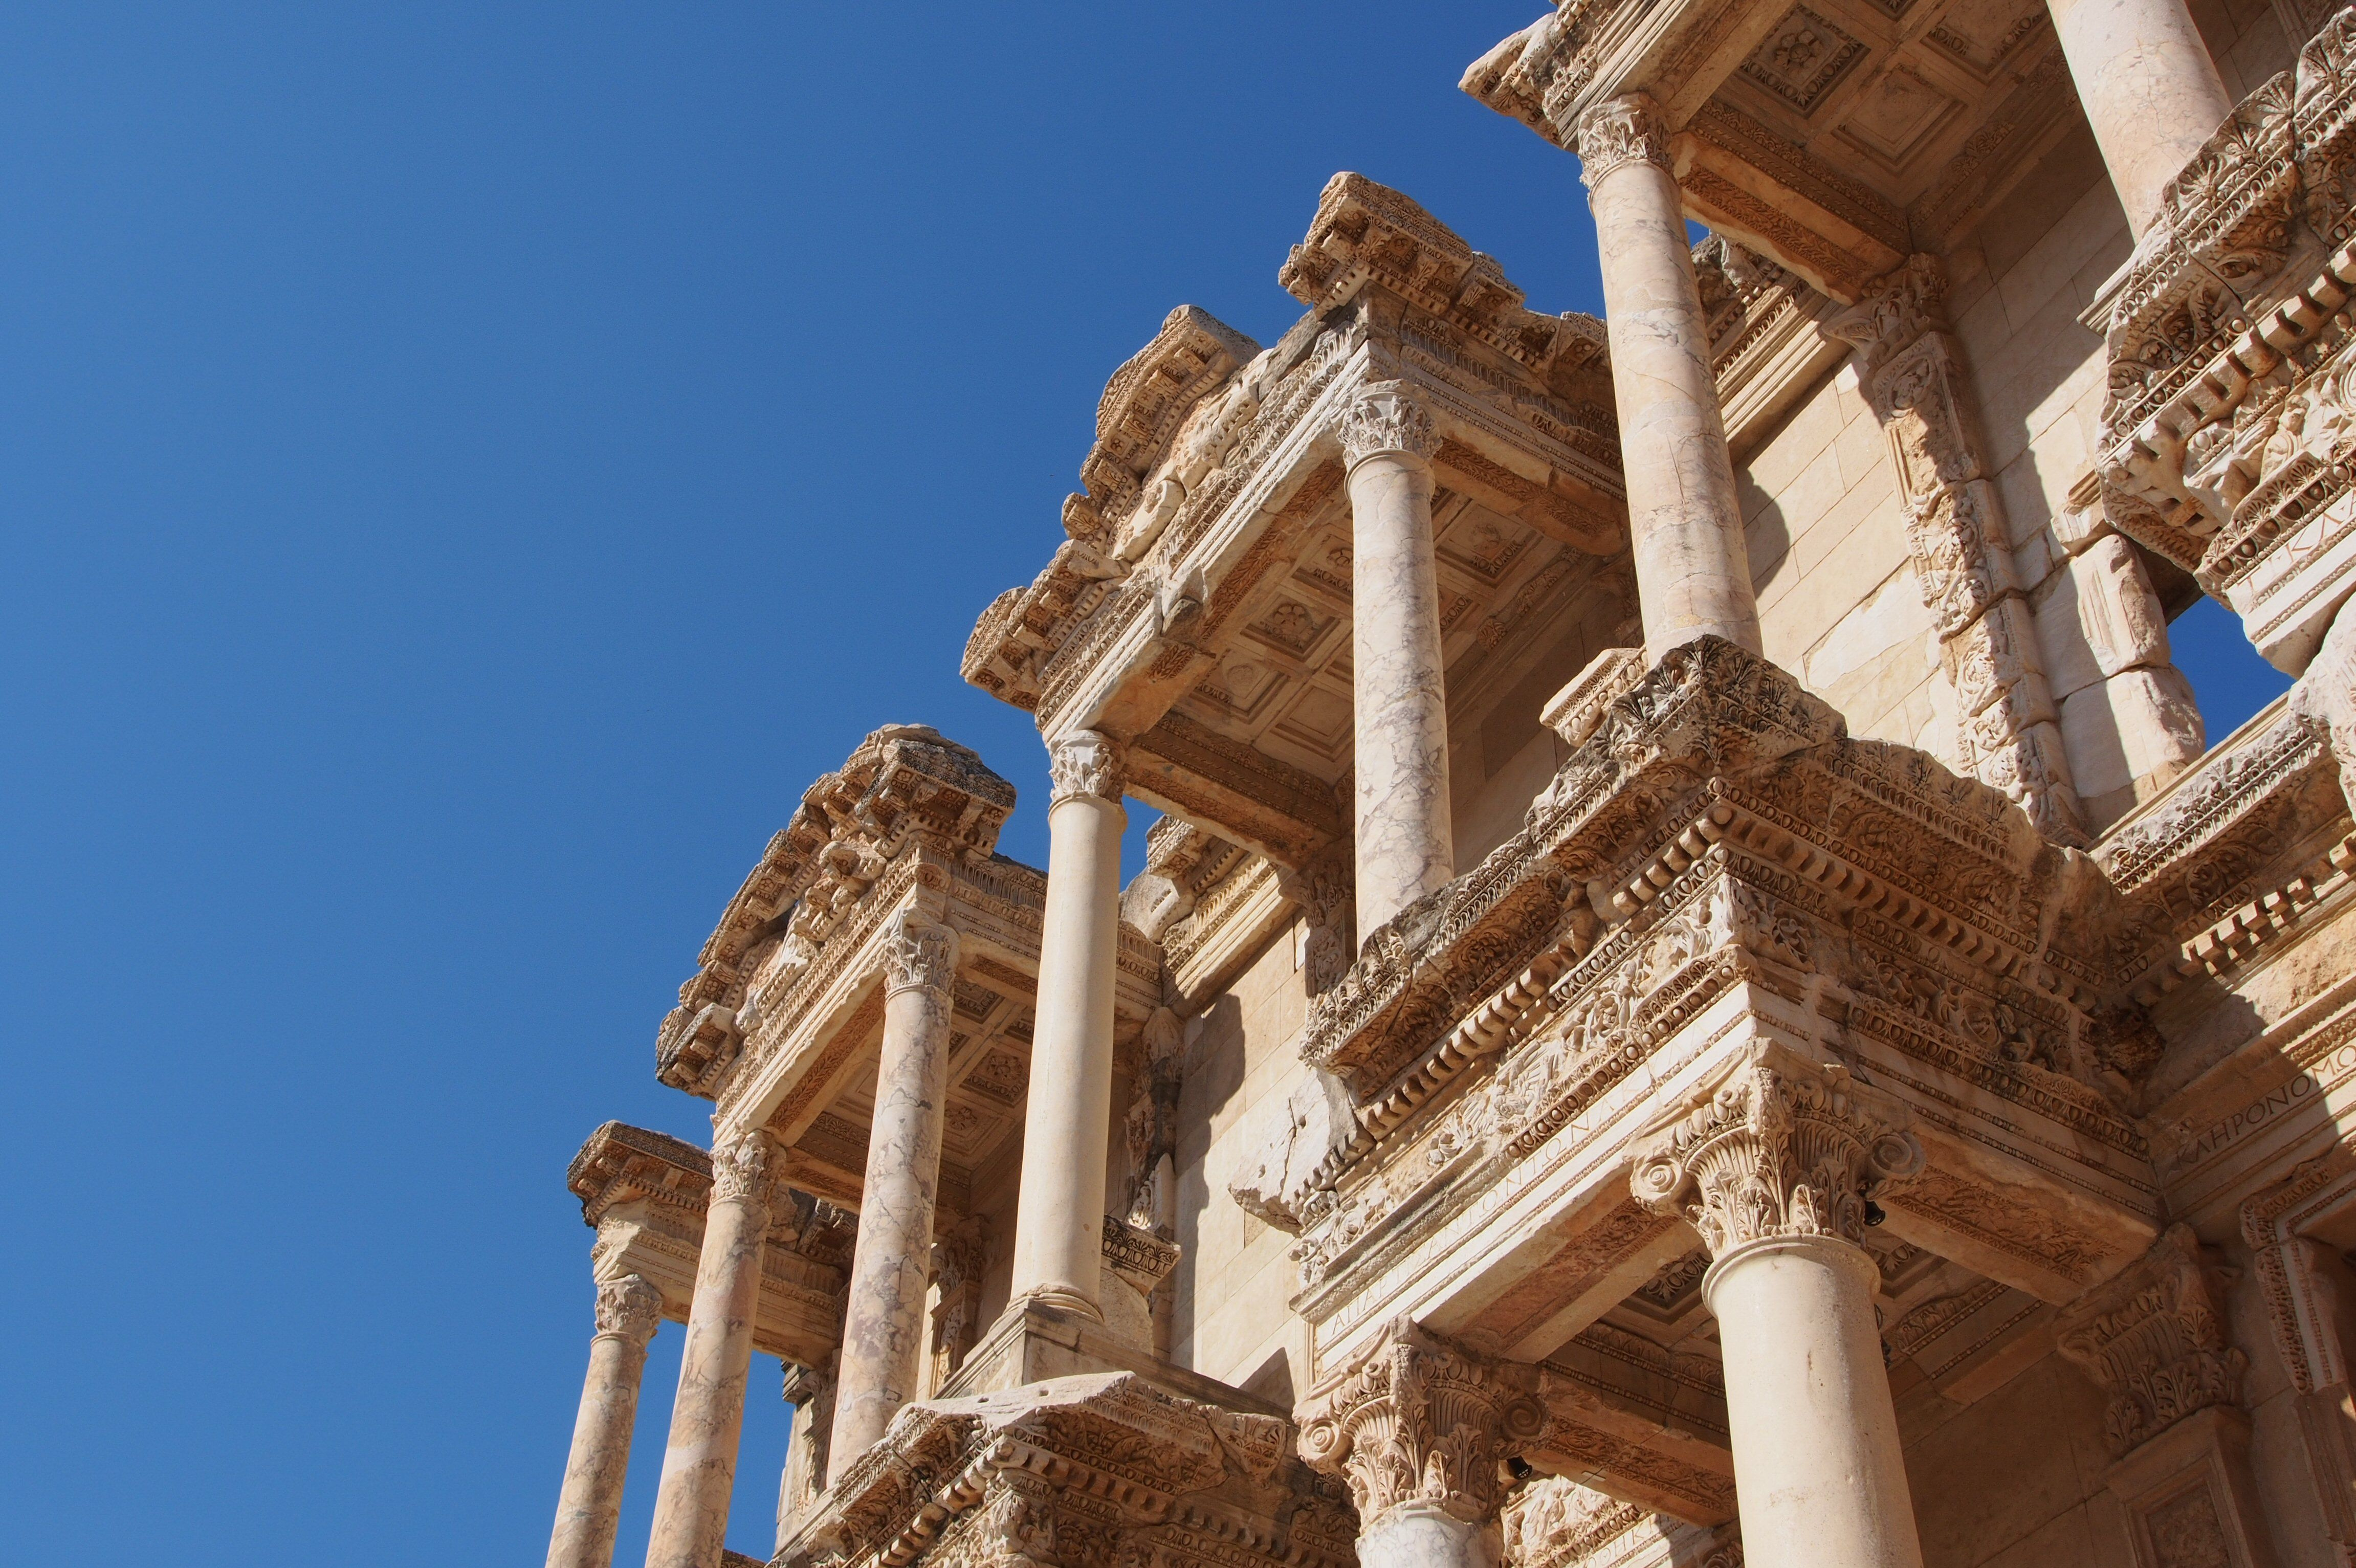 Low angle looking up the ruined facade of the columns and pediments of the Celsus Library in Ephesus, Turkey